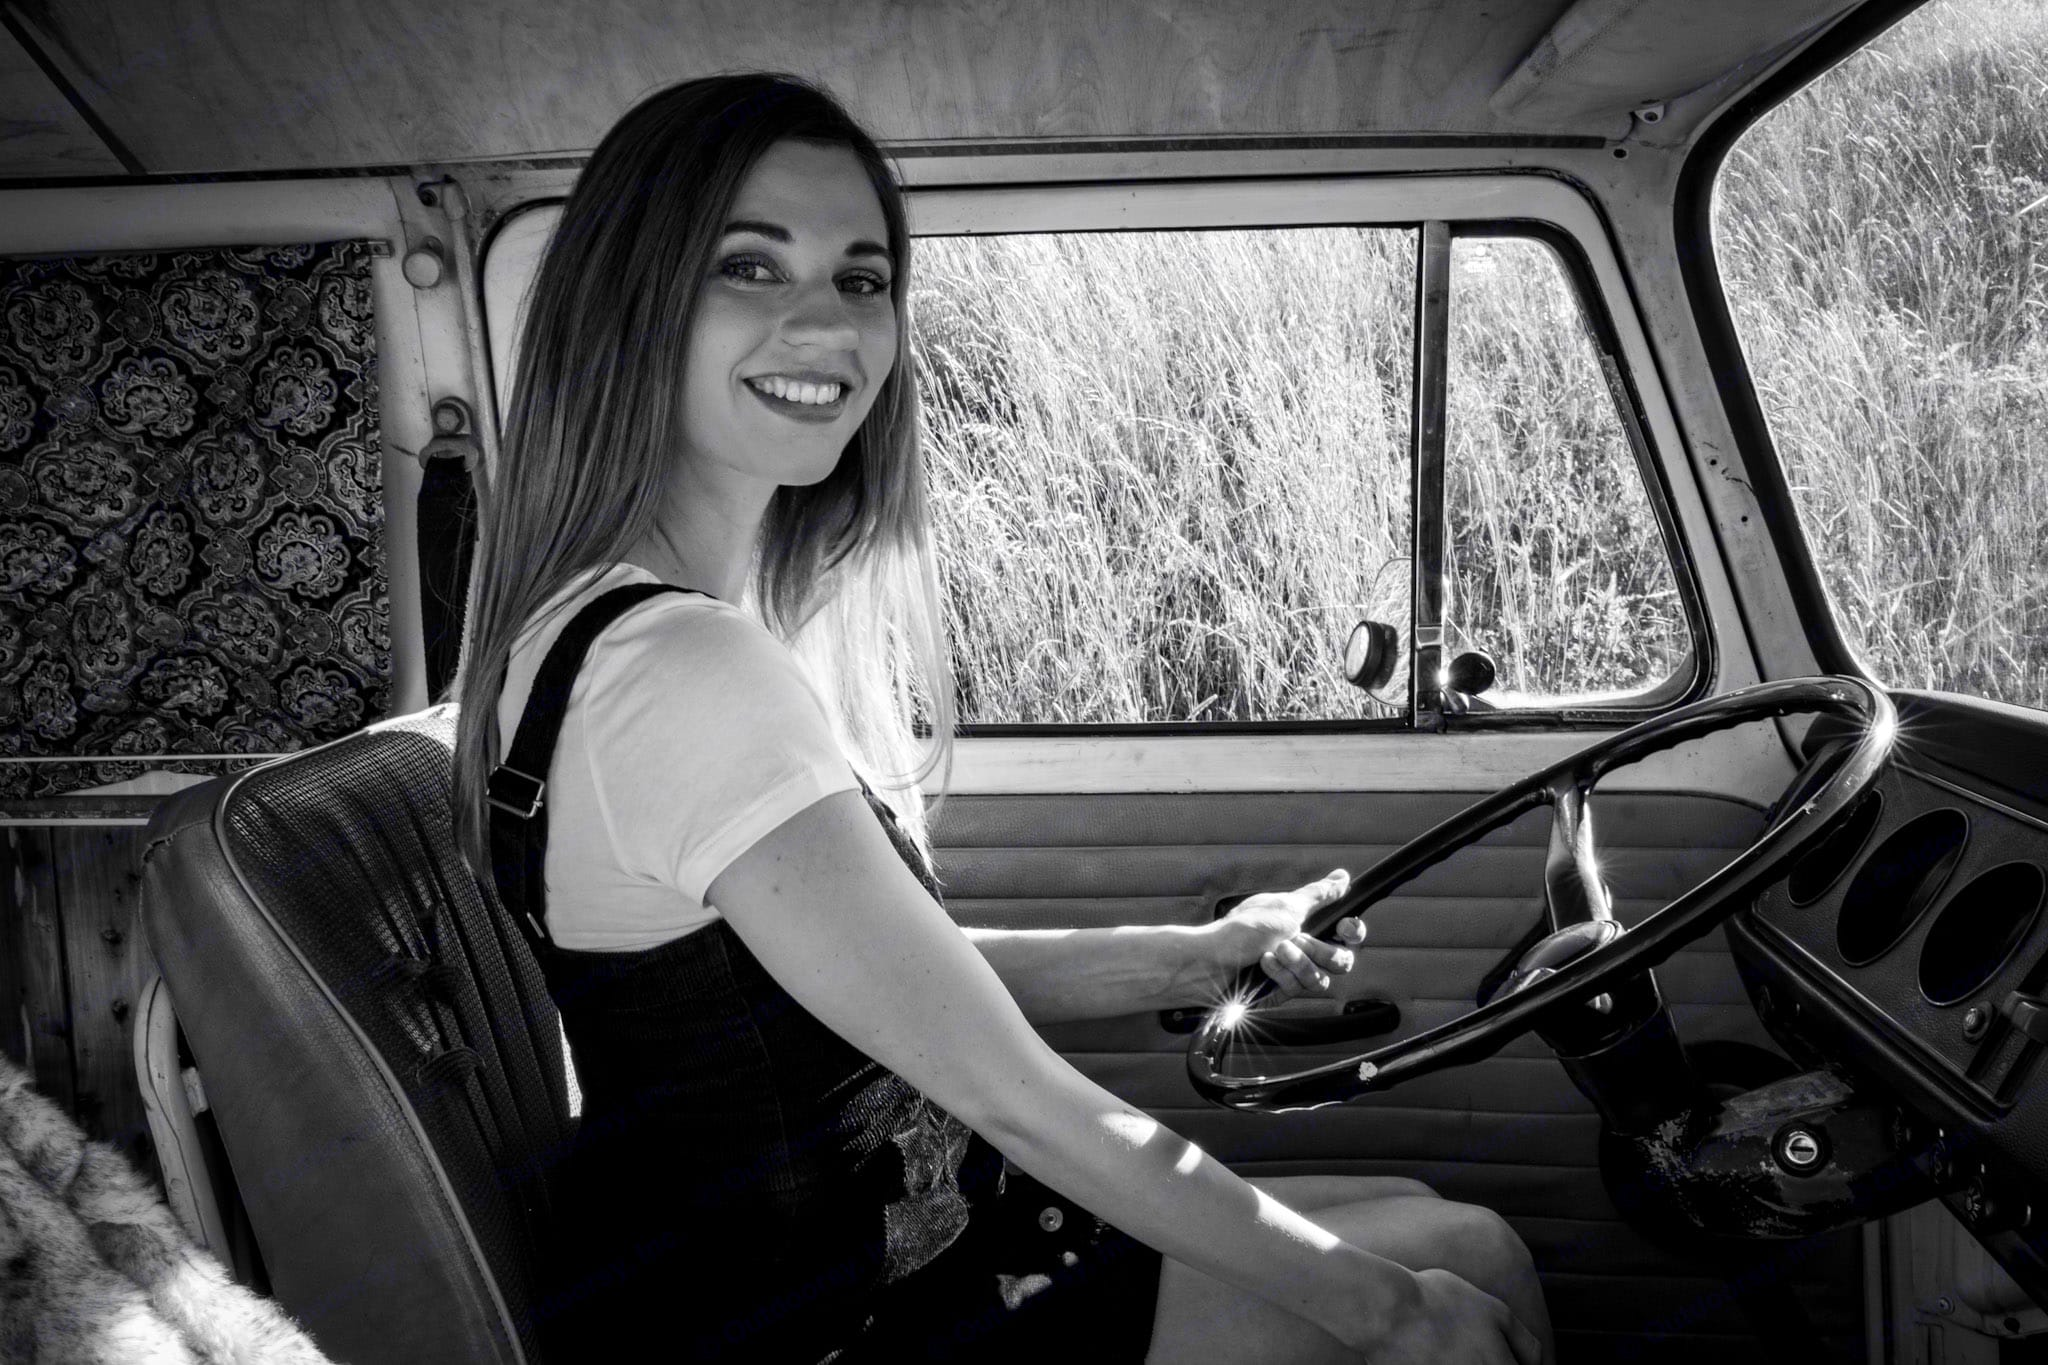 You will find it hard NOT to smile while you are driving around a Classic VW Bus. Whether you are exploring downtown Portland or a neighborhood . Volkswagen Westfalia 1971